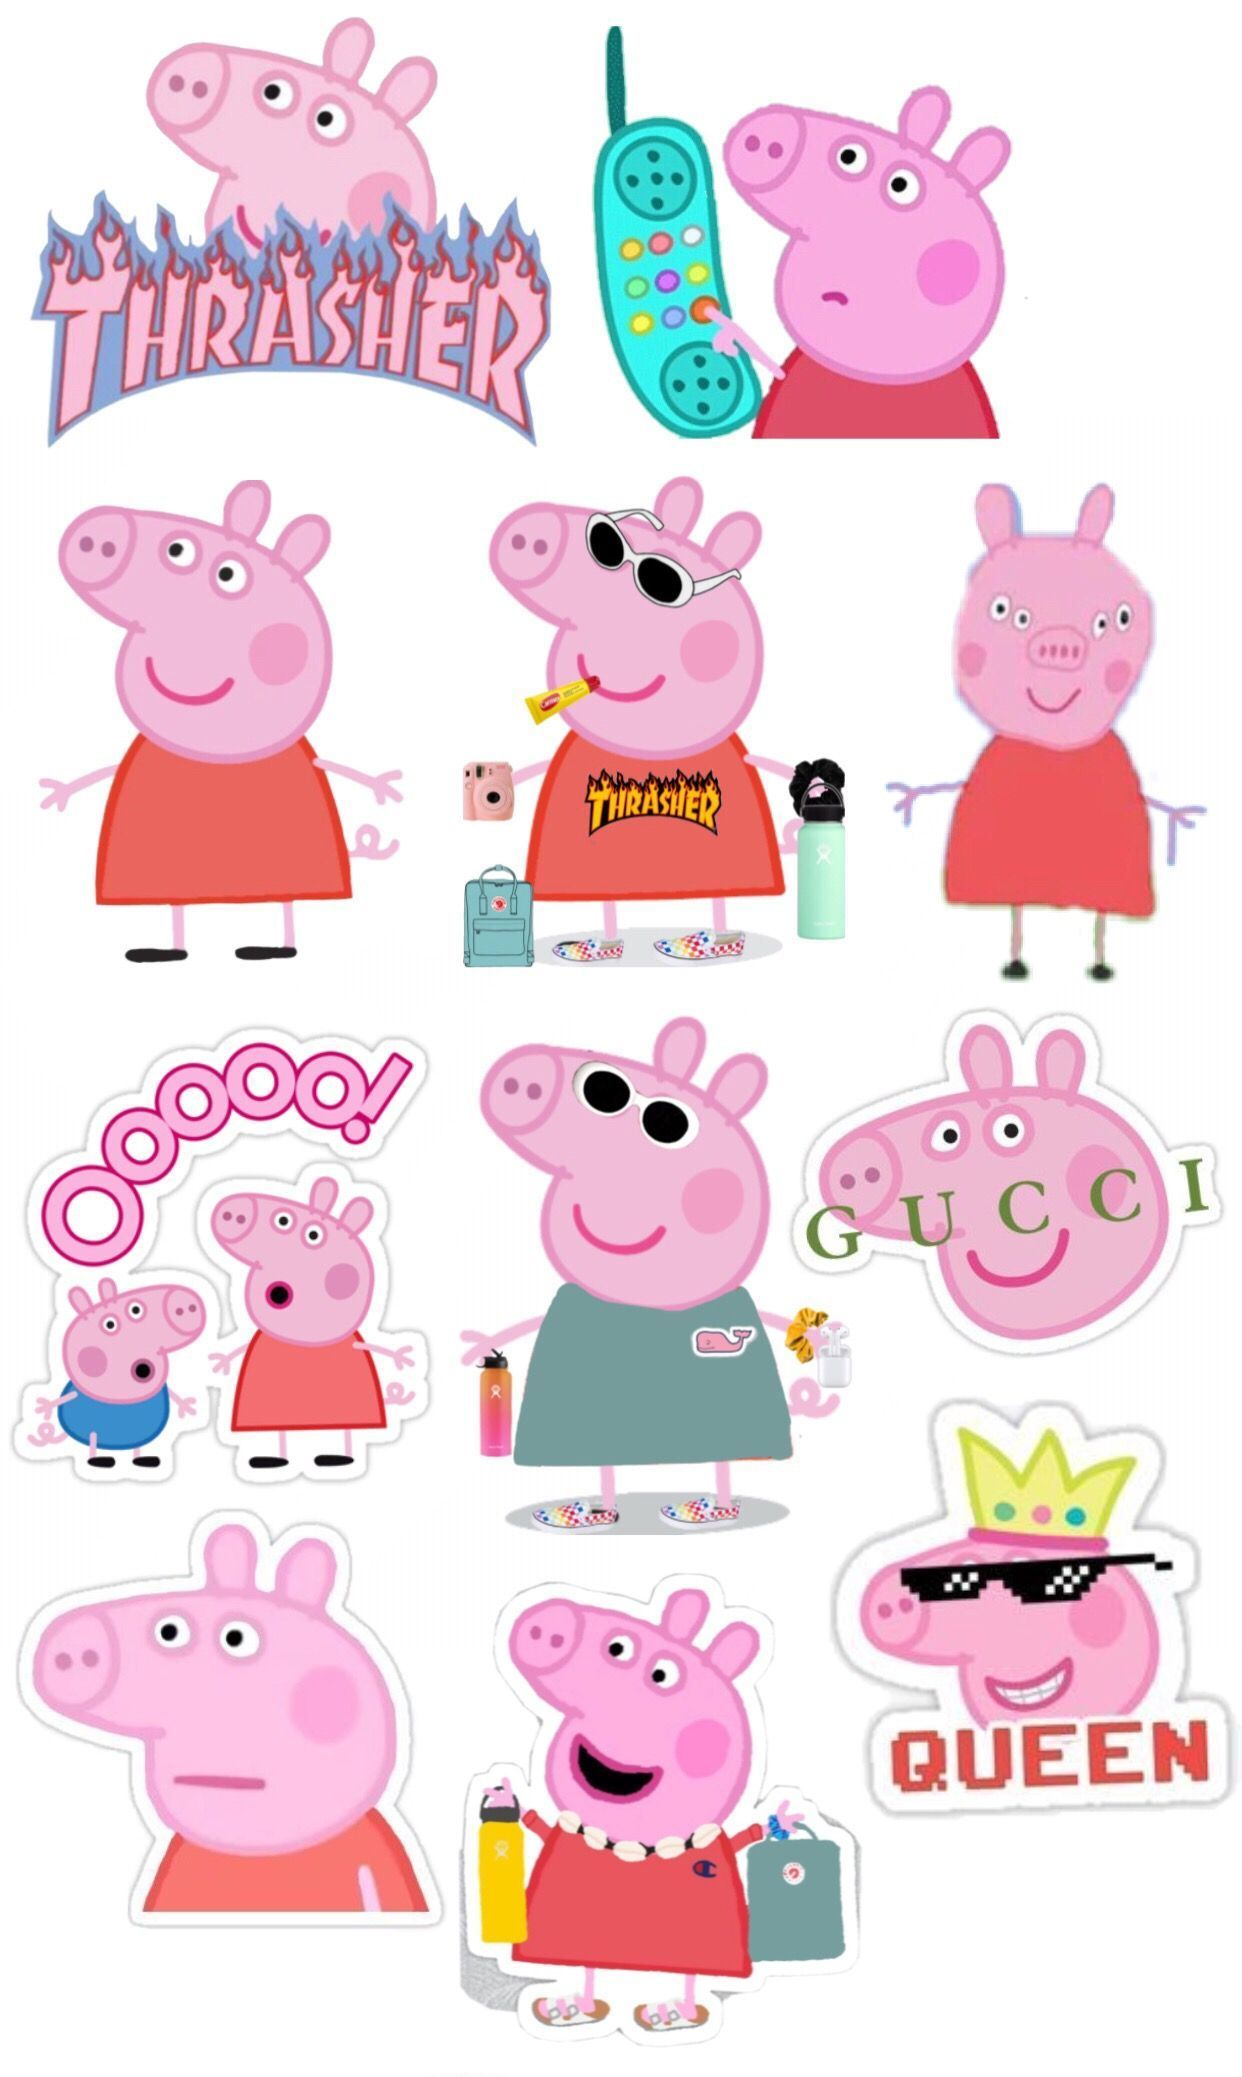 Pepppaaaa What Are You Doing On My Wallpaper Meme Stickers Iphone Case Stickers Cute Stickers